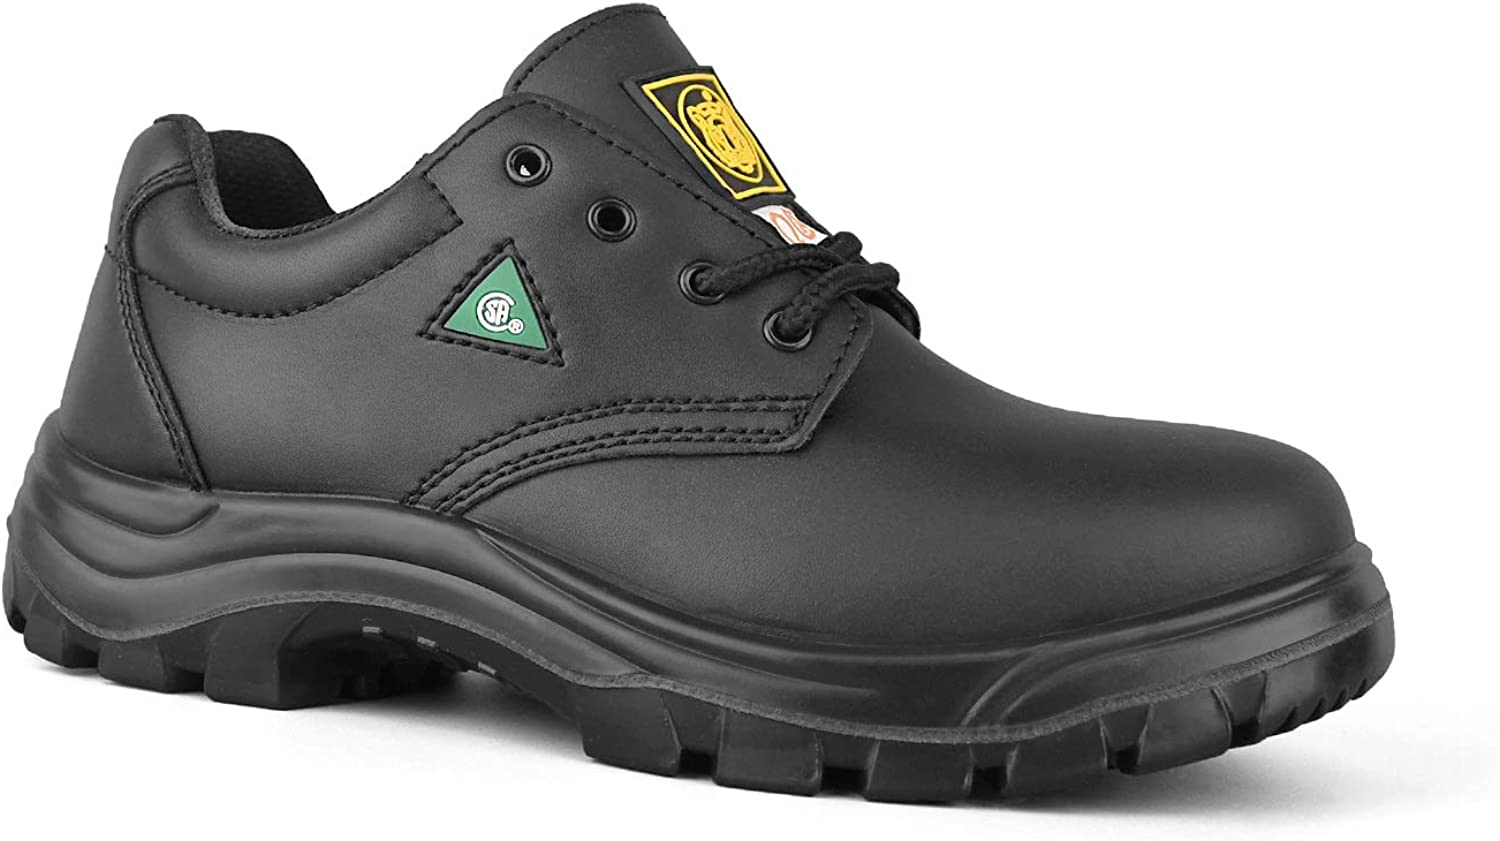 Tiger Safety Women's Safety Shoes Steel